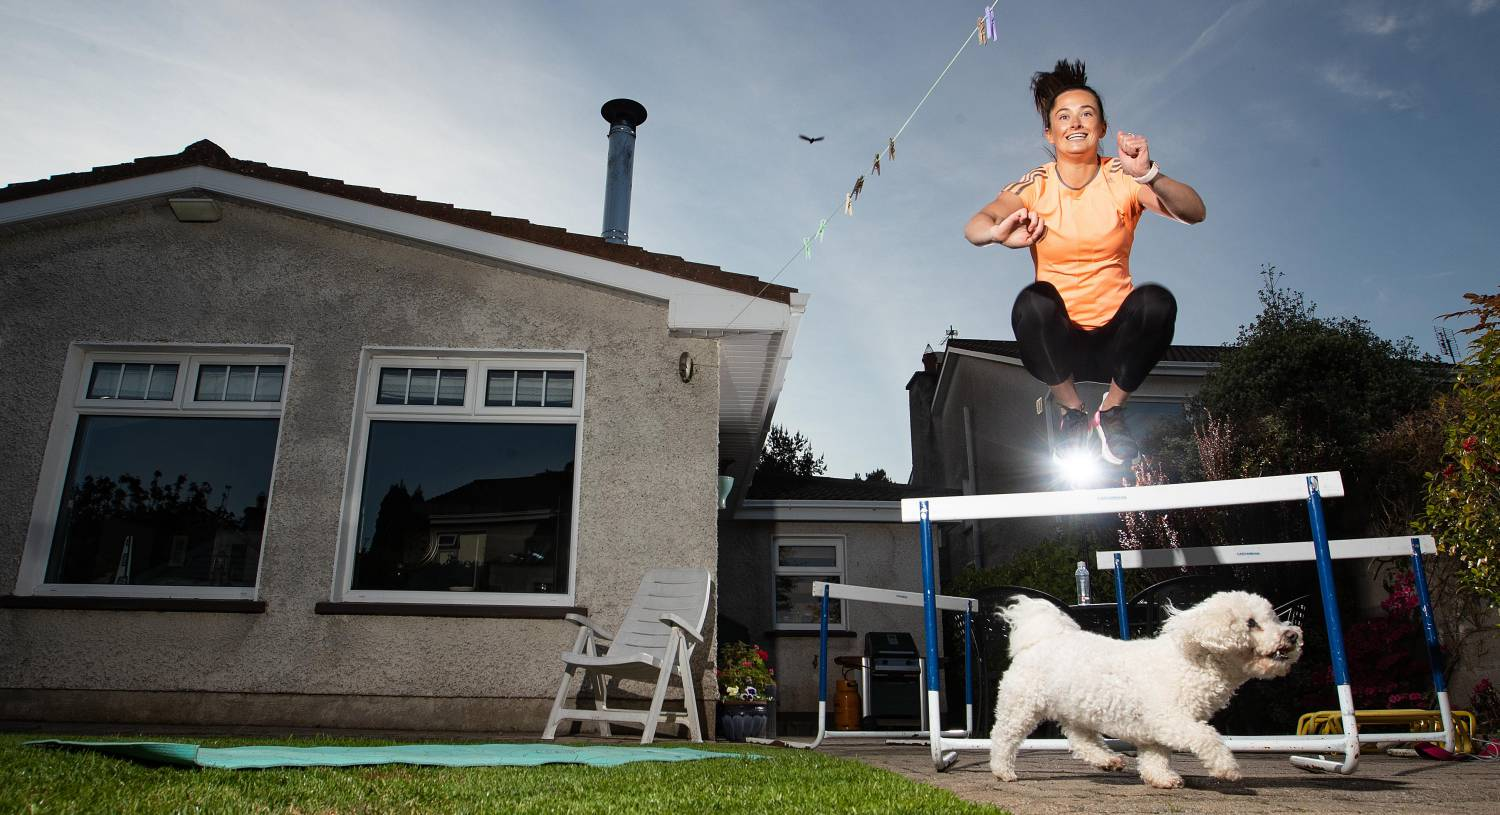 Small steps gearing Ciara Neville up for giant leap towards normality